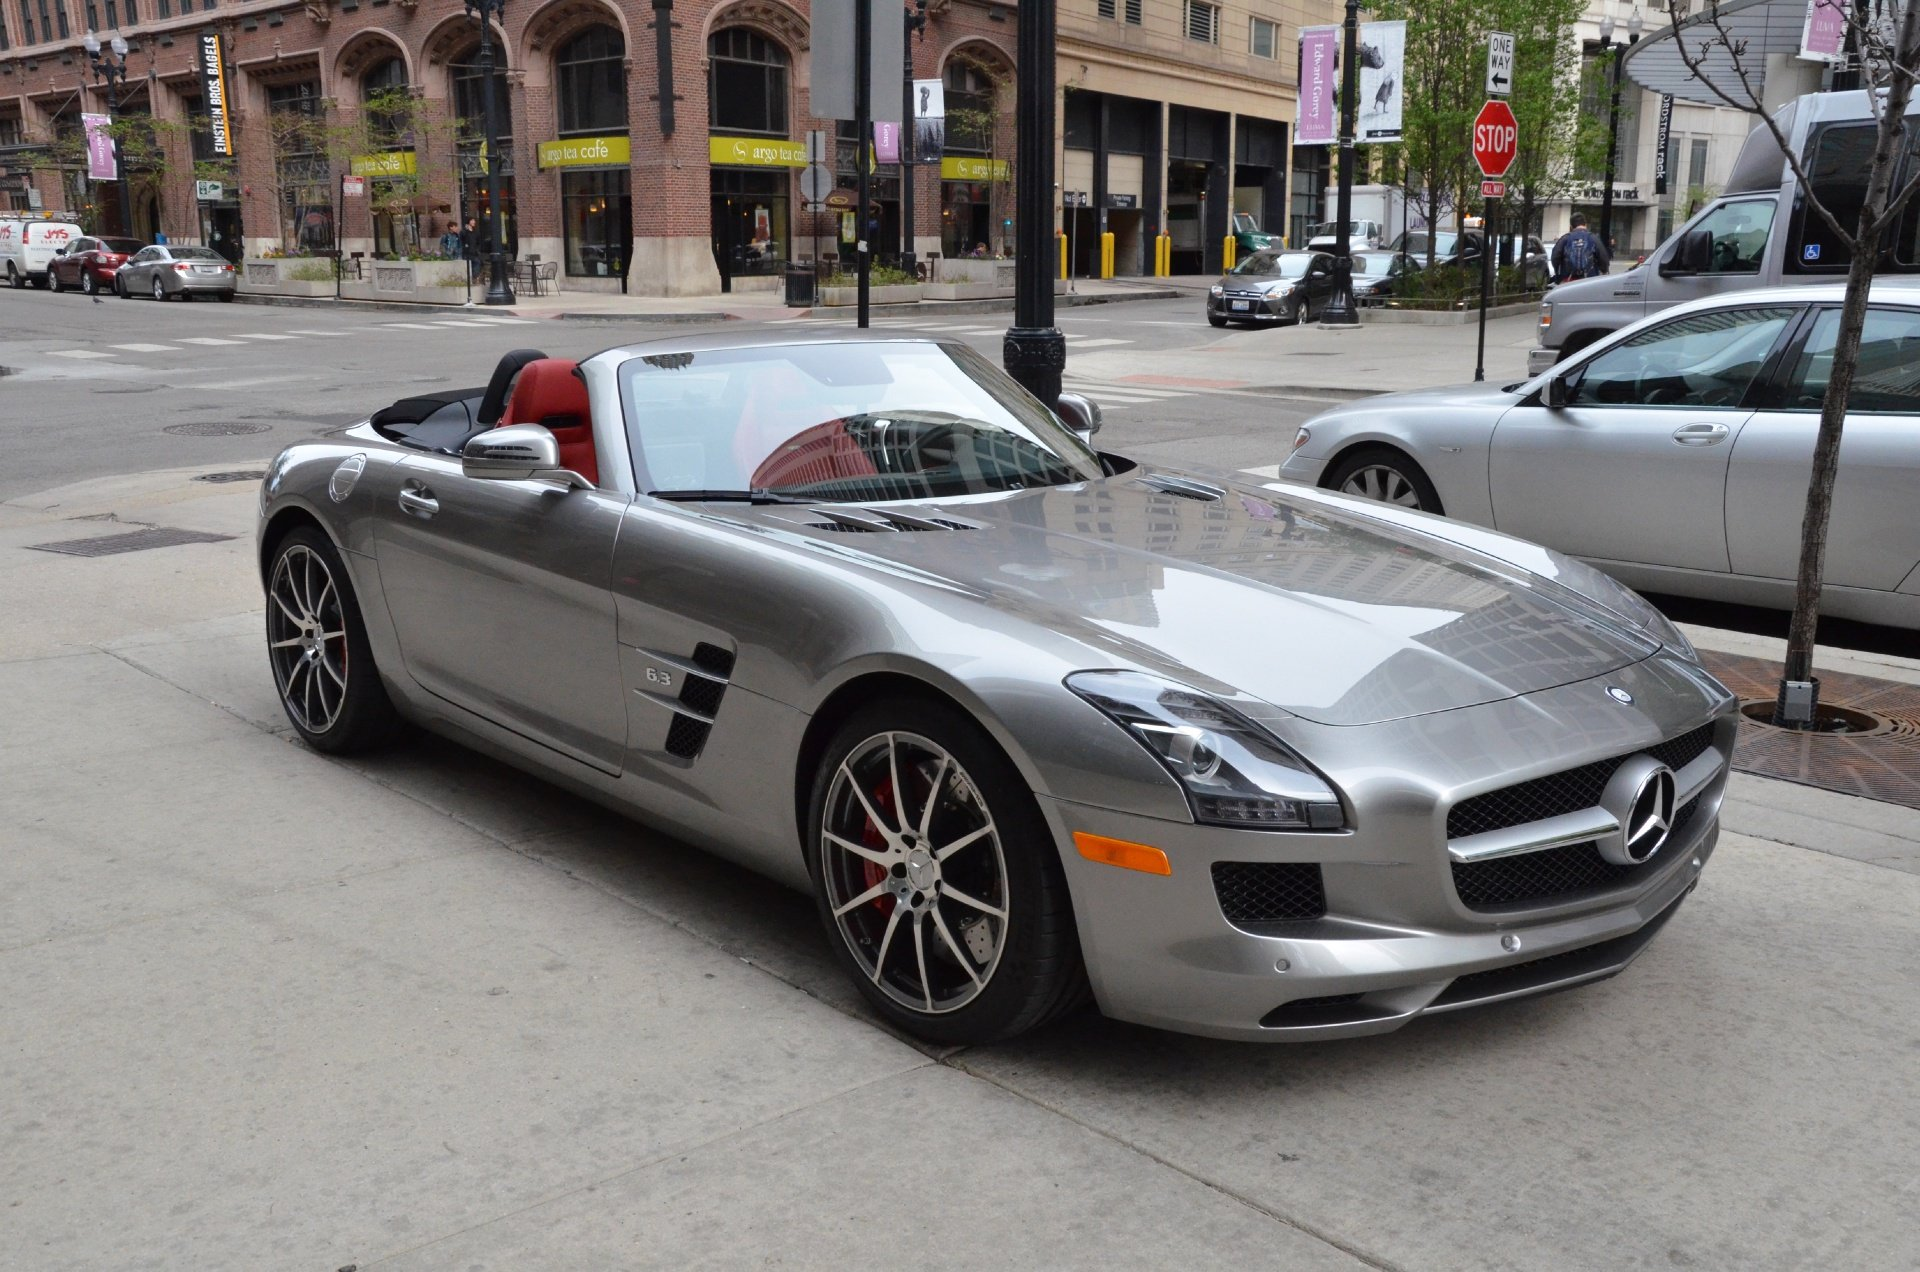 2012 Mercedes SLS amg convertible cabriolet germany SILVER wallpaper    Mercedes Sls Amg Convertible